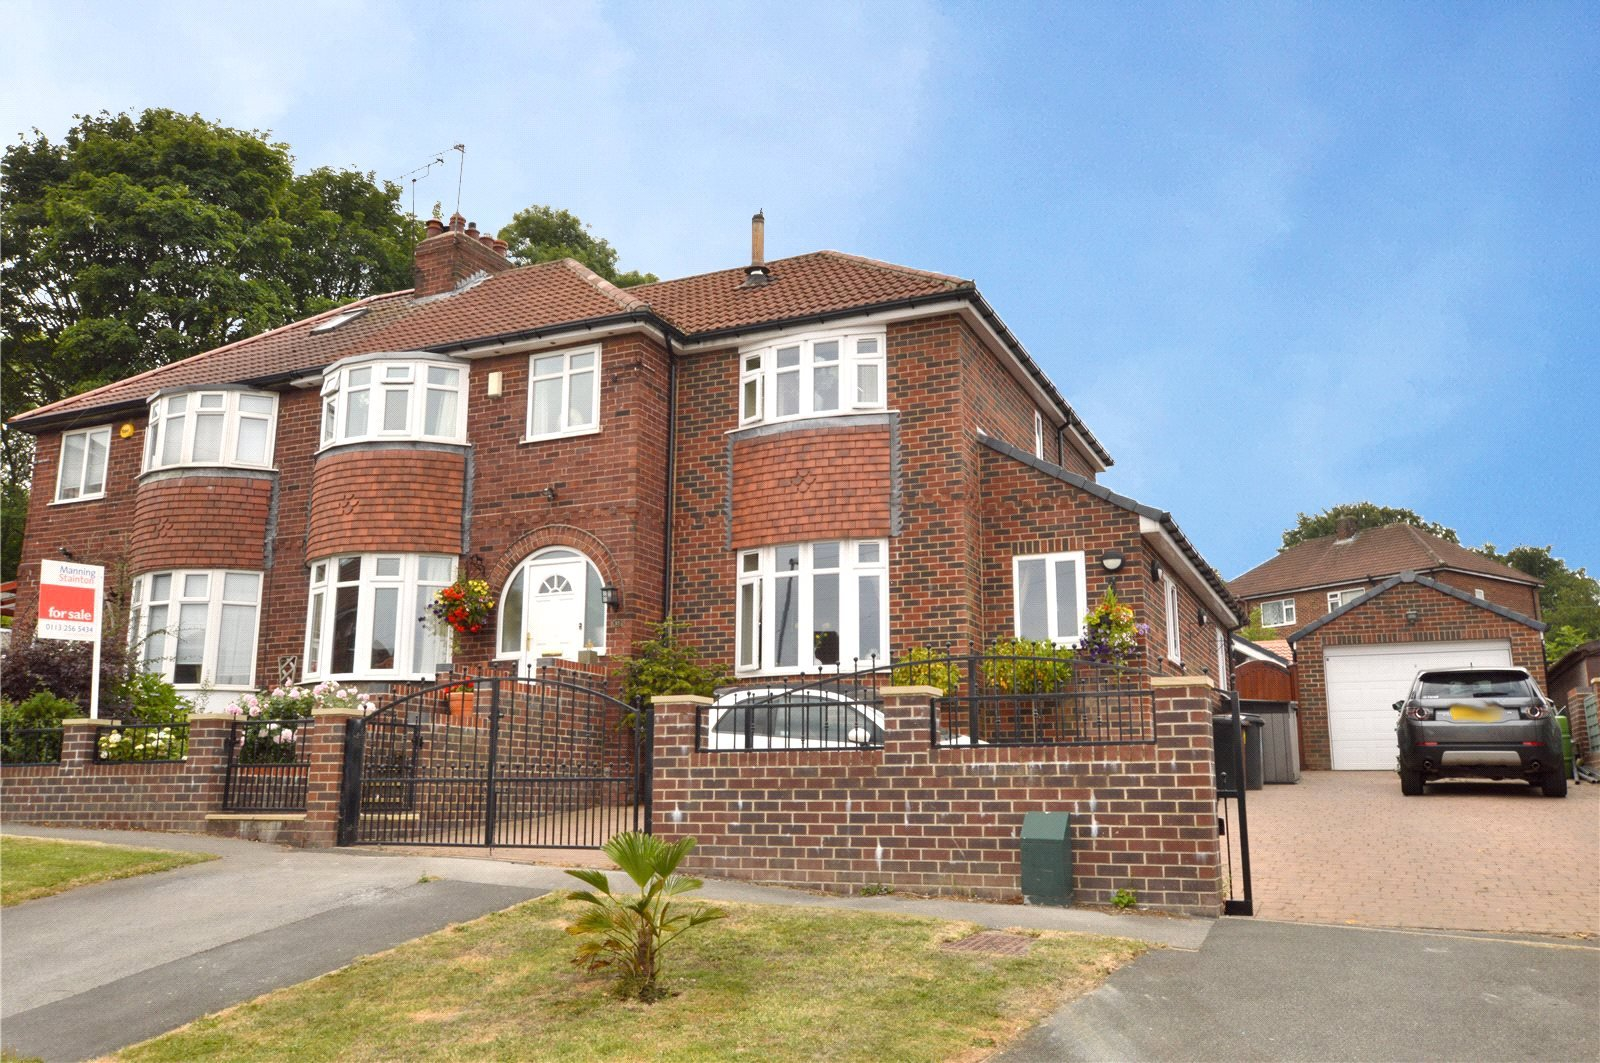 Property for sale in Pudsey, exterior, large semi detached red brick home